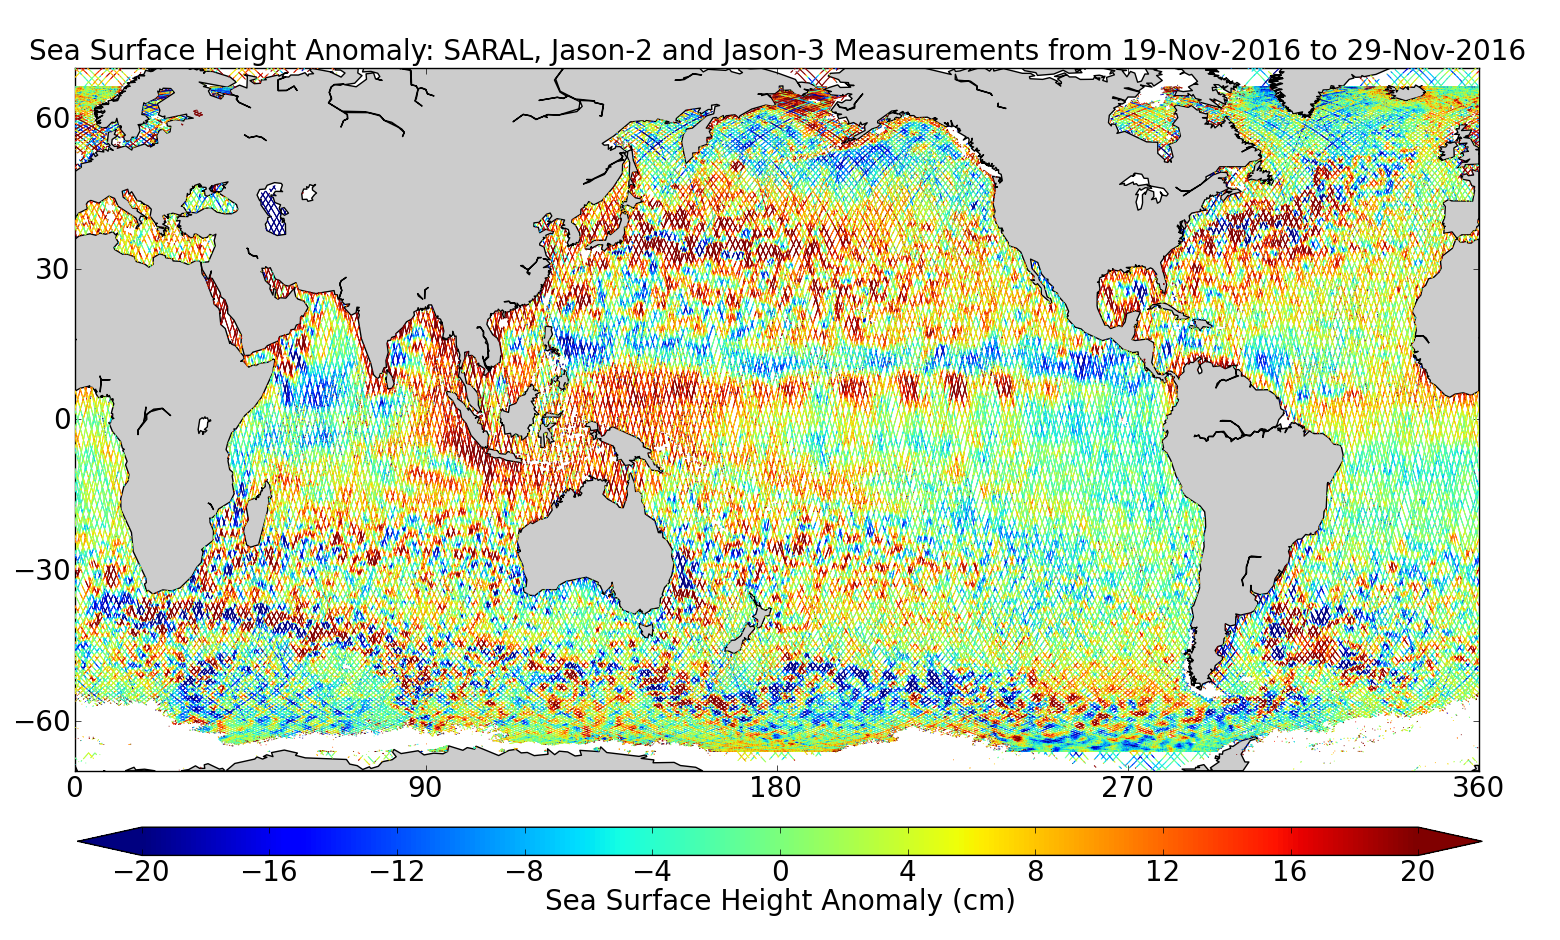 Sea Surface Height Anomaly: SARAL, Jason-2 and Jason-3 Measurements from 19-Nov-2016 to 29-Nov-2016